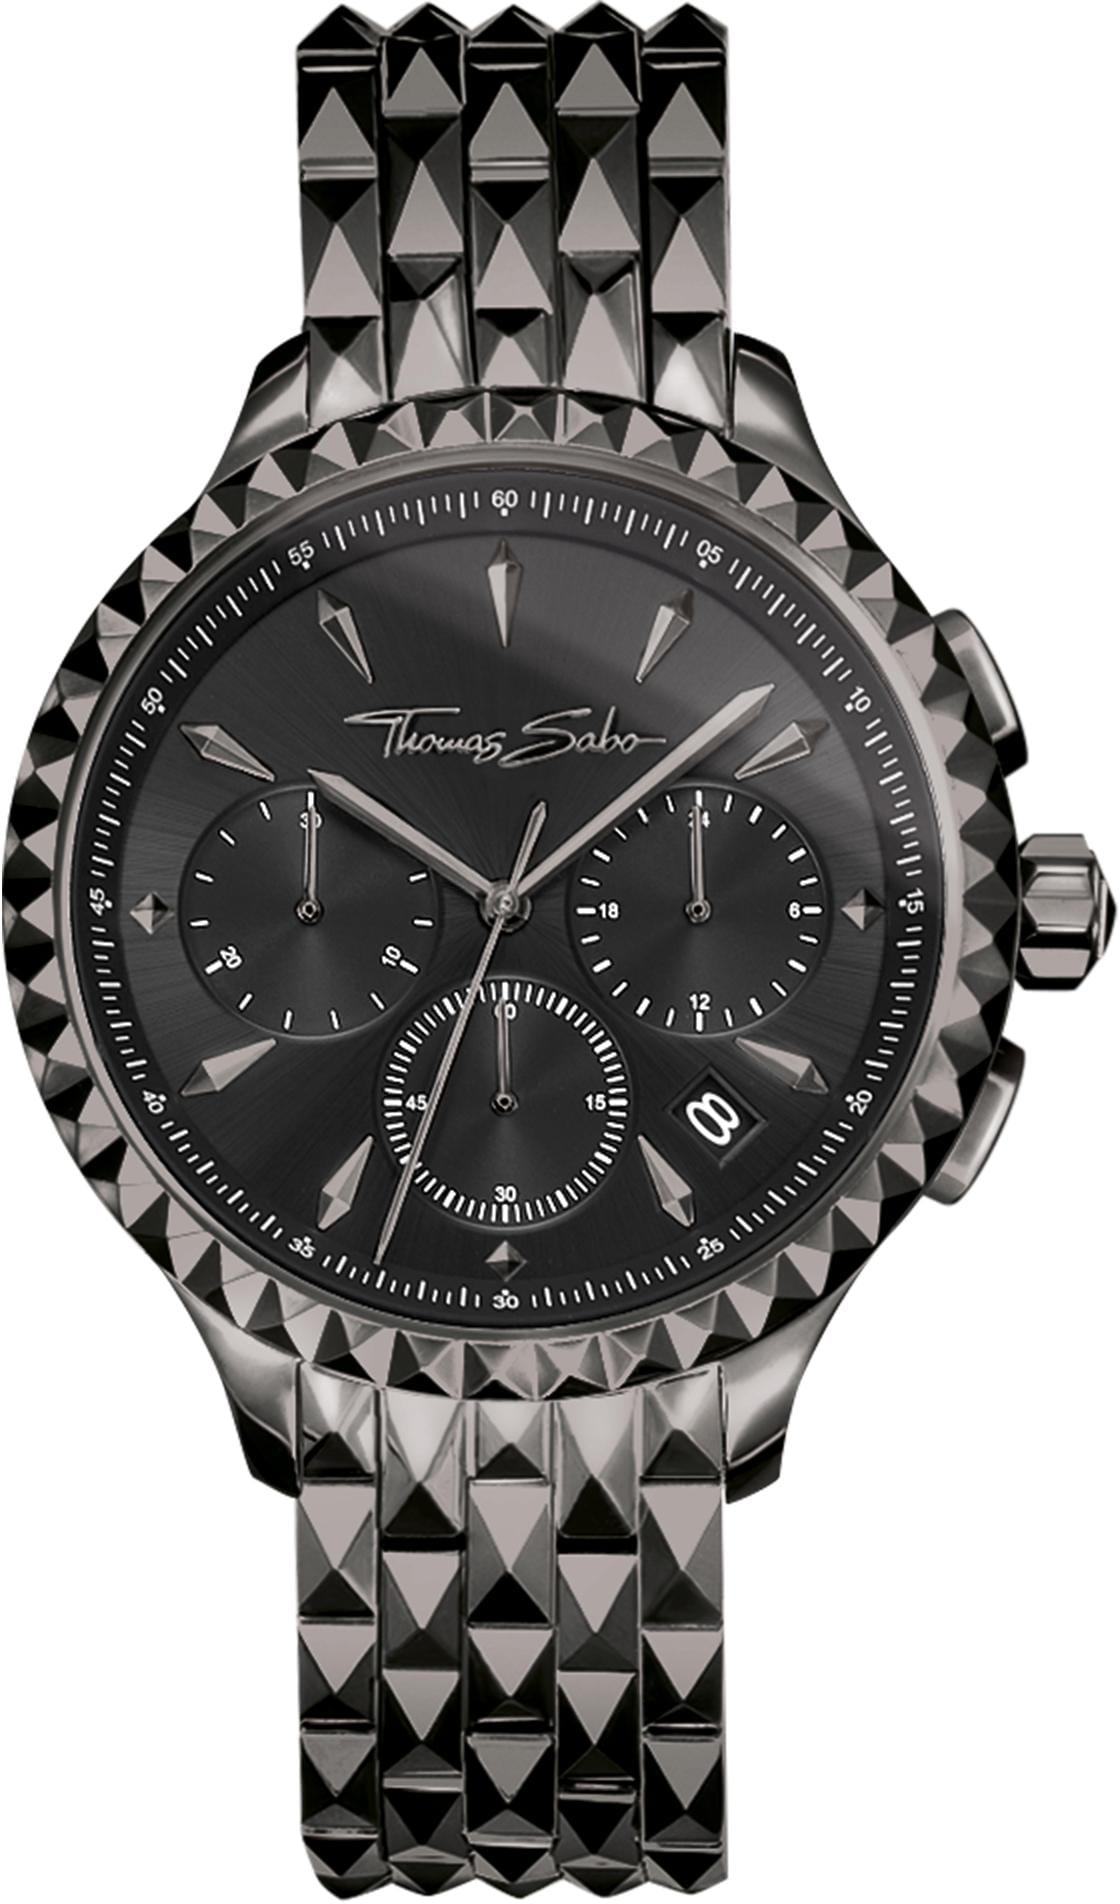 THOMAS SABO Chronograph REBEL AT HEART WA0348-202-203-38 mm | Uhren > Chronographen | Thomas Sabo